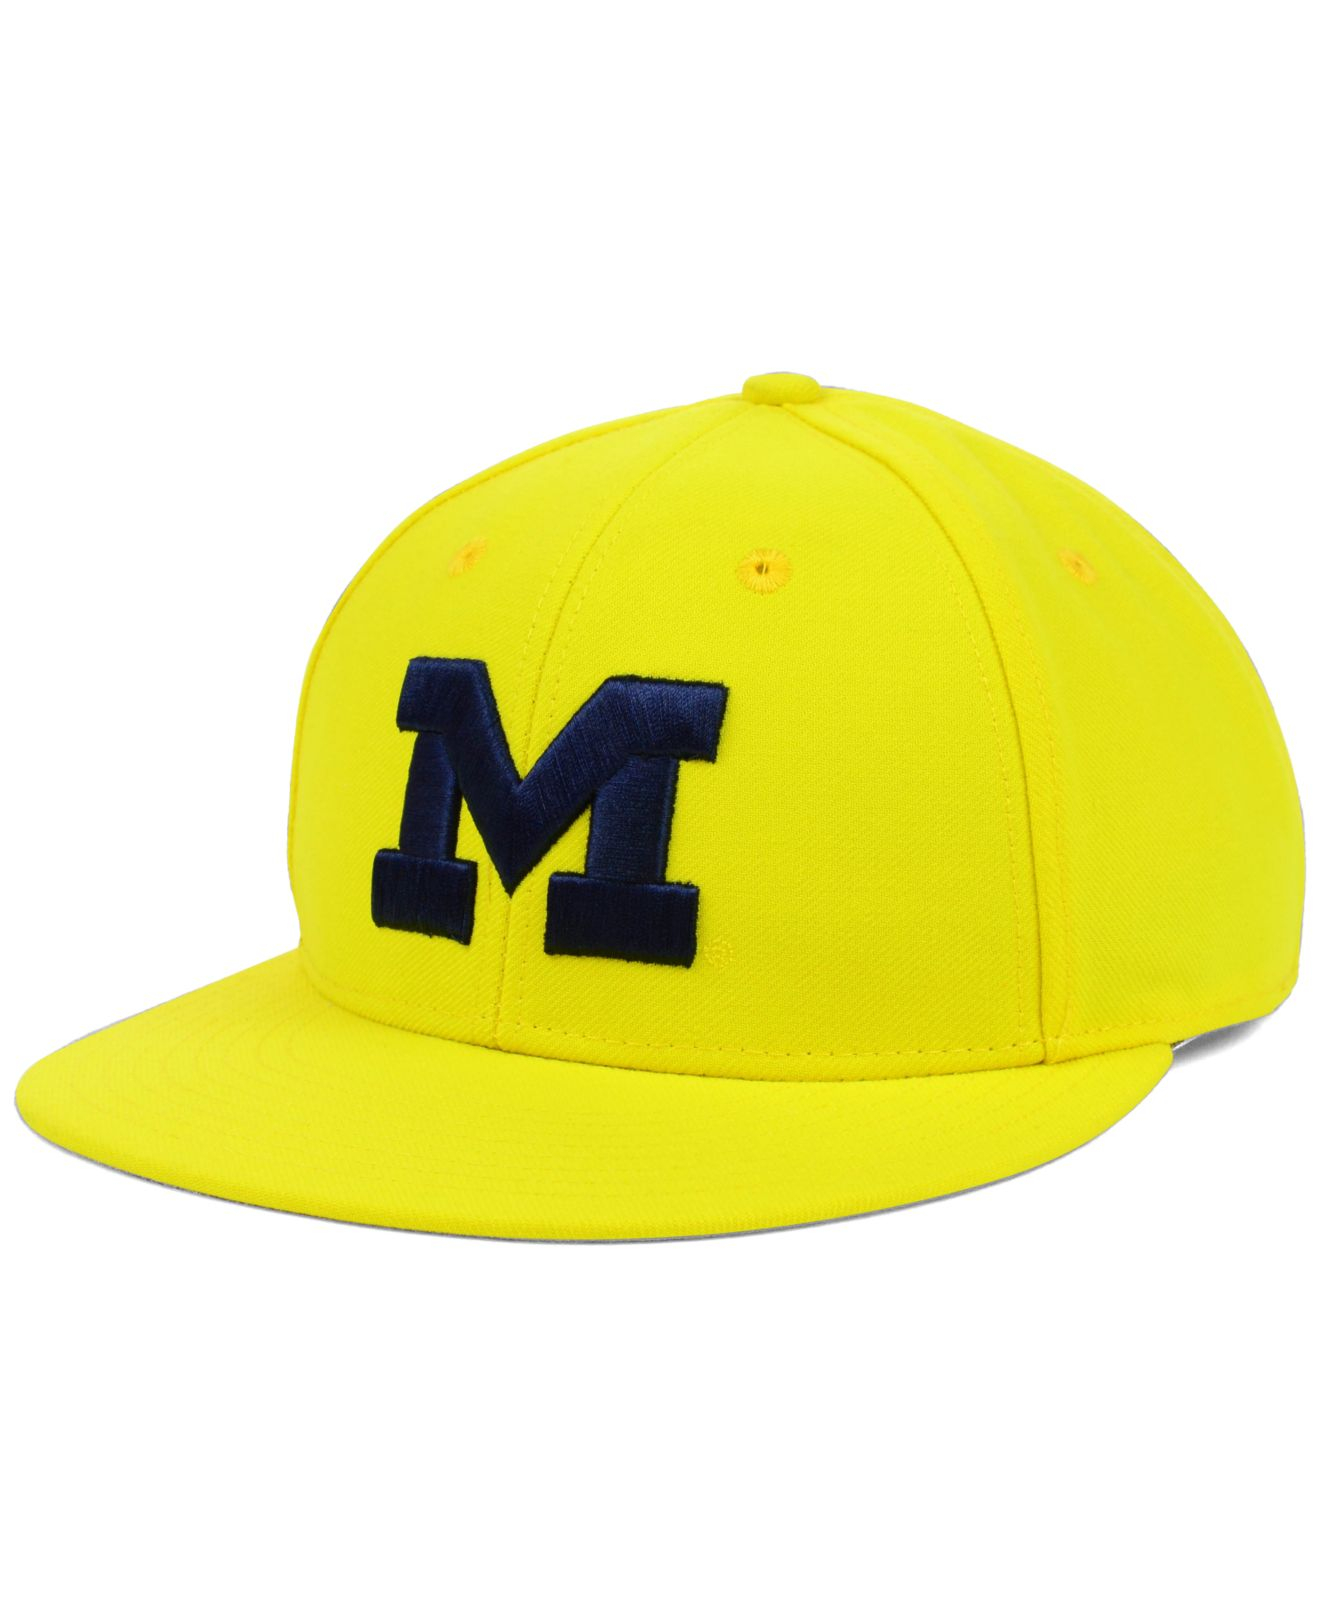 668a7038a7c Lyst - adidas Michigan Wolverines Ncaa On-field Baseball Cap in ...